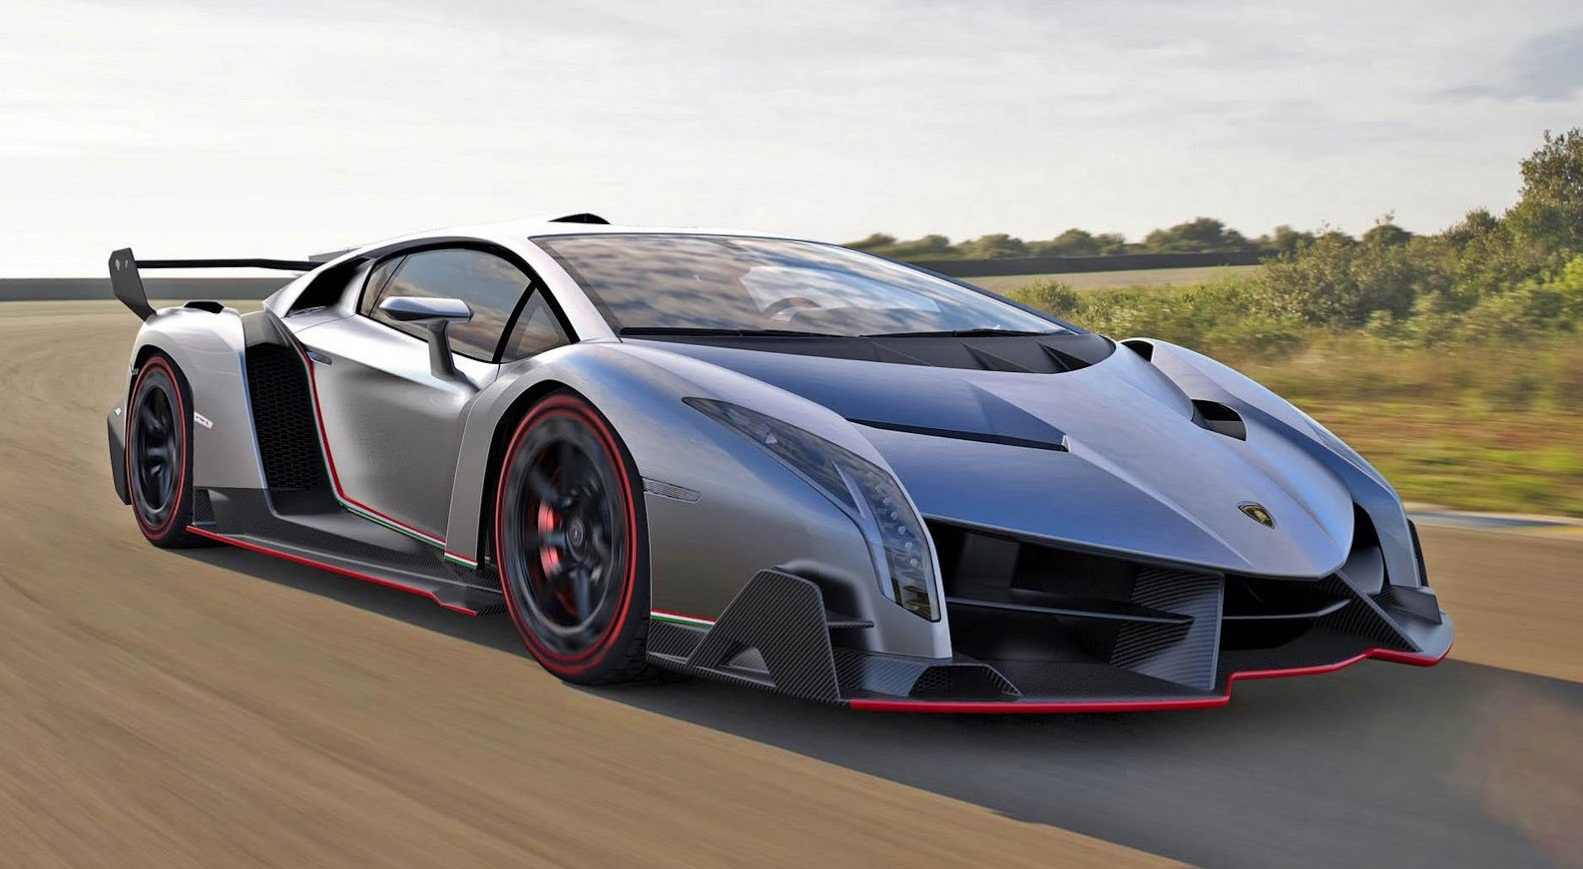 Top 5 Fastest Luxury Cars: Leakage! Lamborghini's New And Very Rare Supercar… The